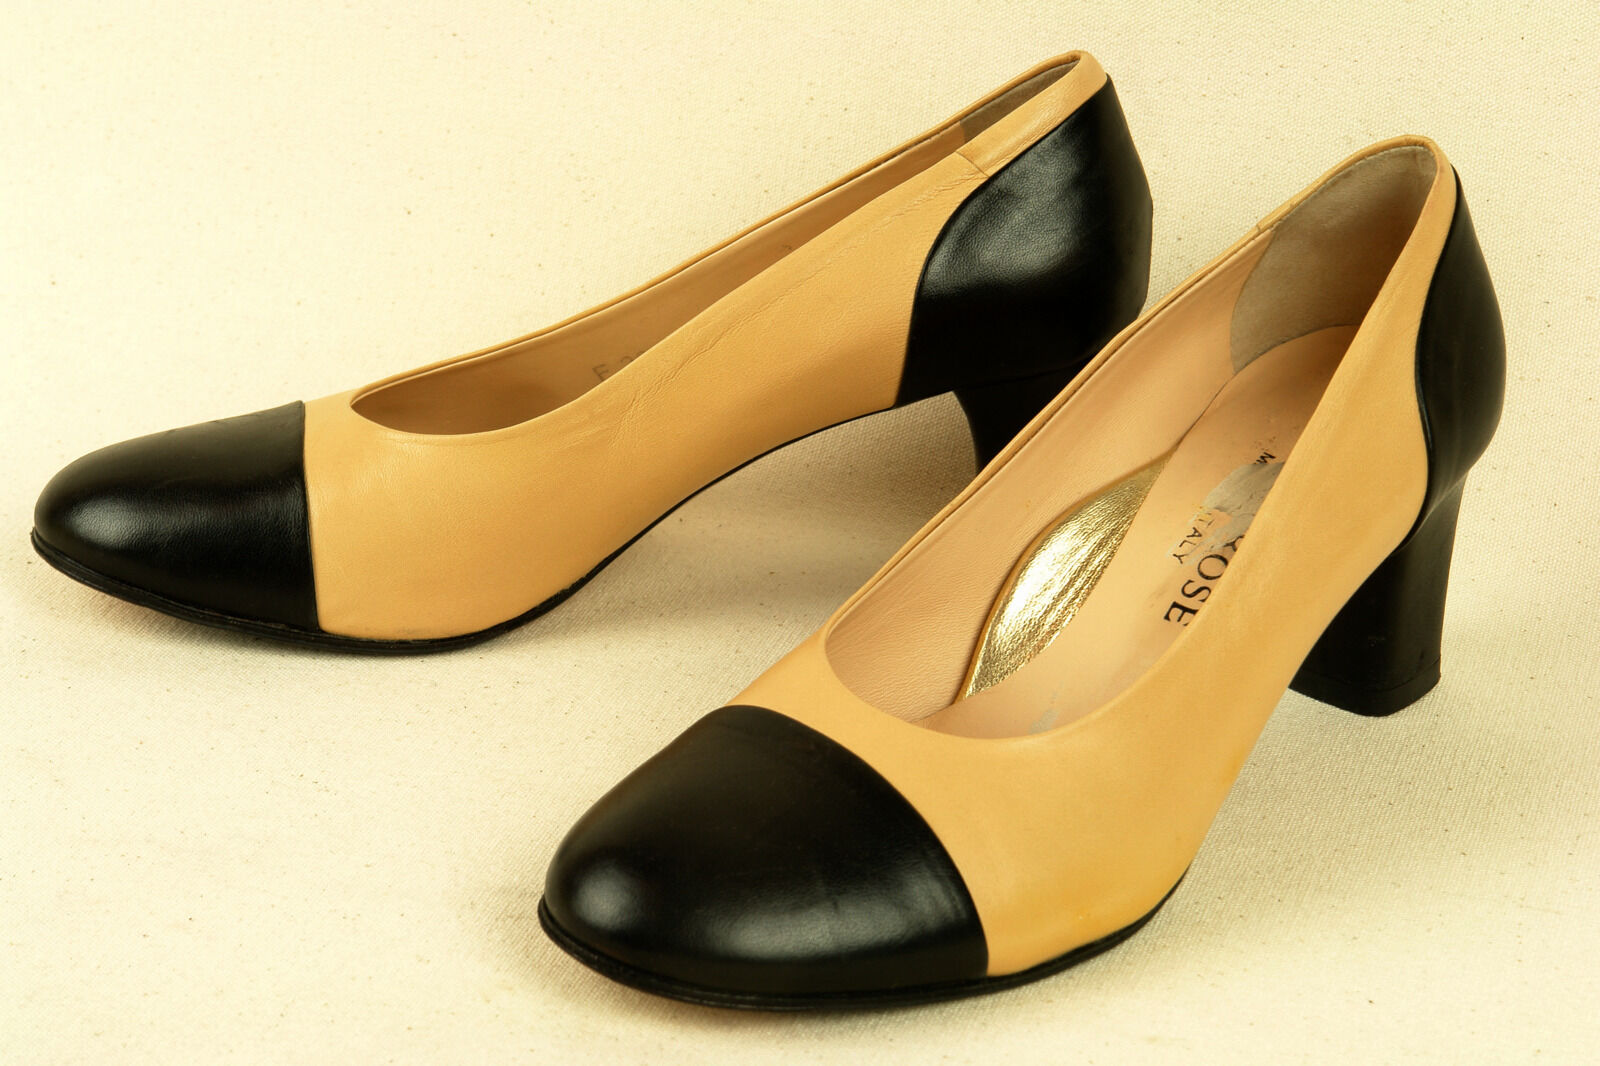 TARYN ROSE / ITALY / CLASSIC SPECTATOR PUMP IN NUDE NUDE NUDE & BLACK / 36.5 / EXCELLENT d513d0